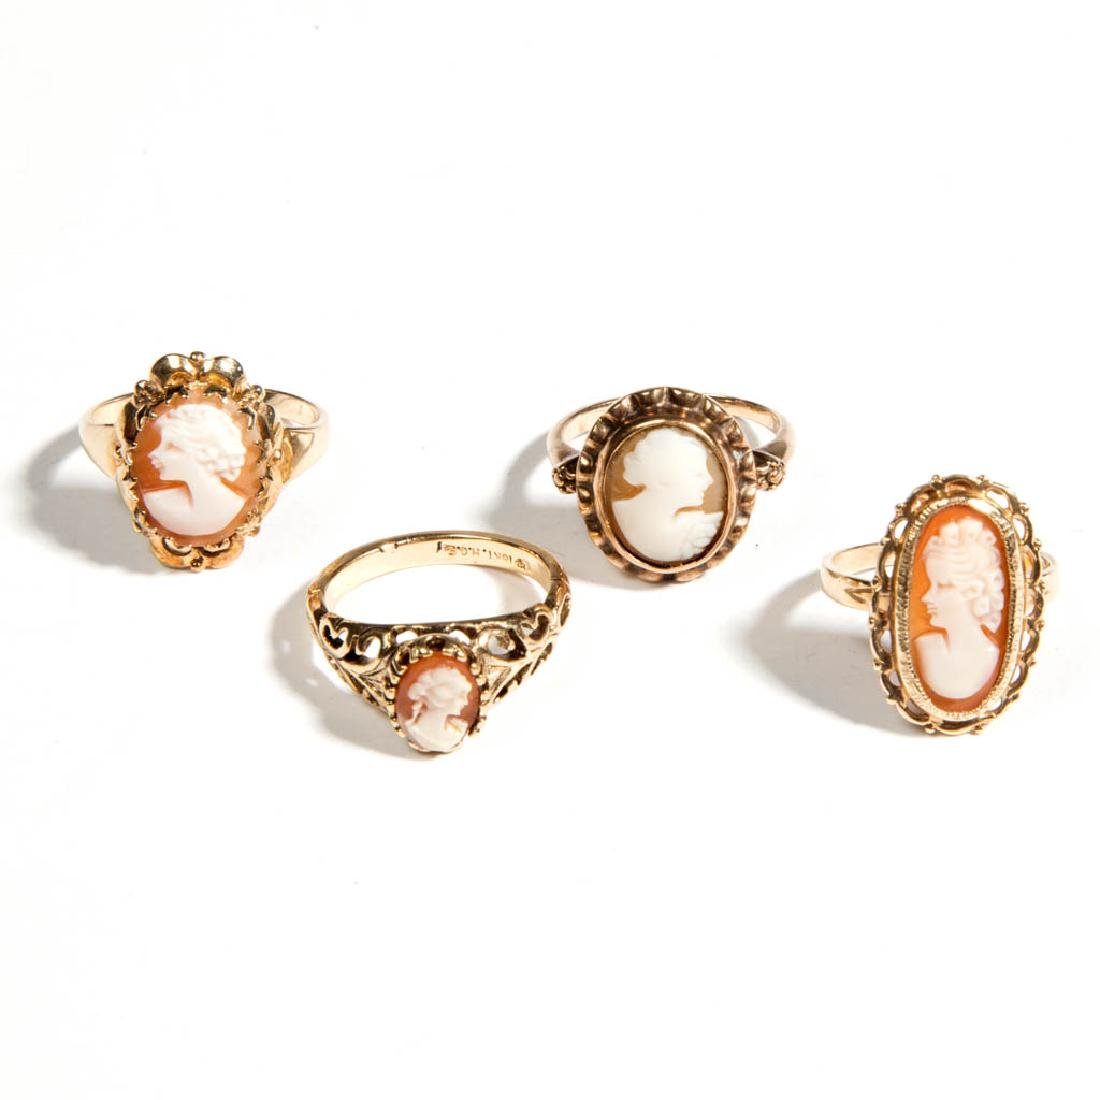 ASSORTED ANTIQUE / VINTAGE 10K GOLD CAMEO RINGS, LOT OF